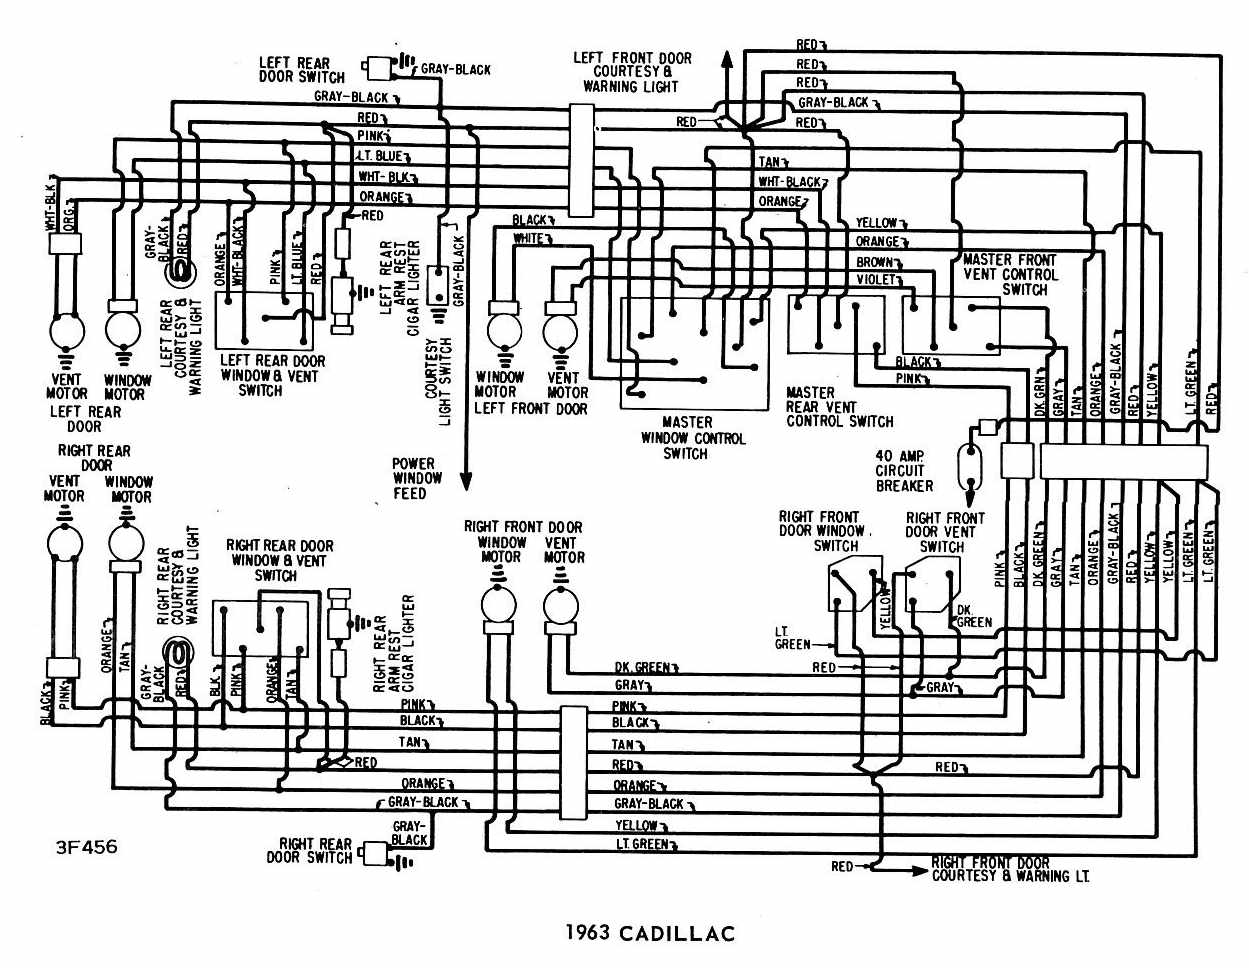 Cadillac 1963 Windows Wiring Diagram jaguar wiring diagram jaguar free wiring diagrams readingrat net  at mifinder.co